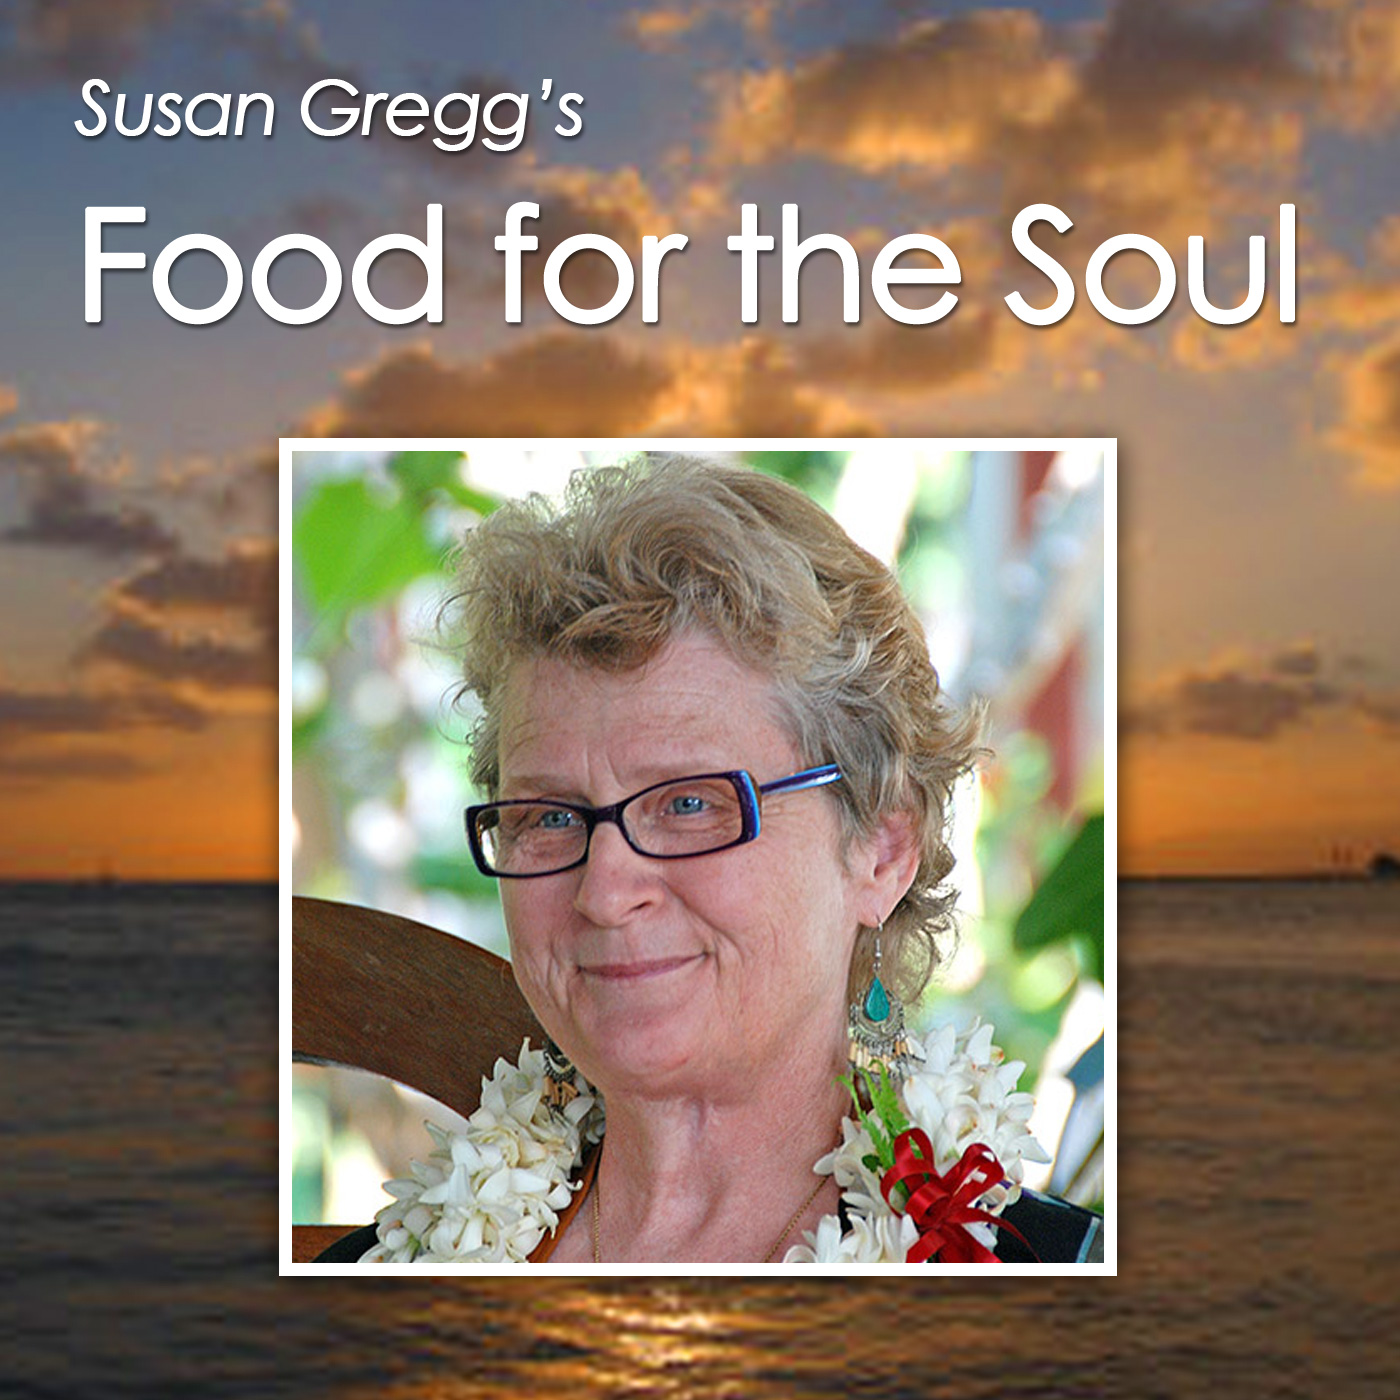 Susan Gregg's Food for the Soul